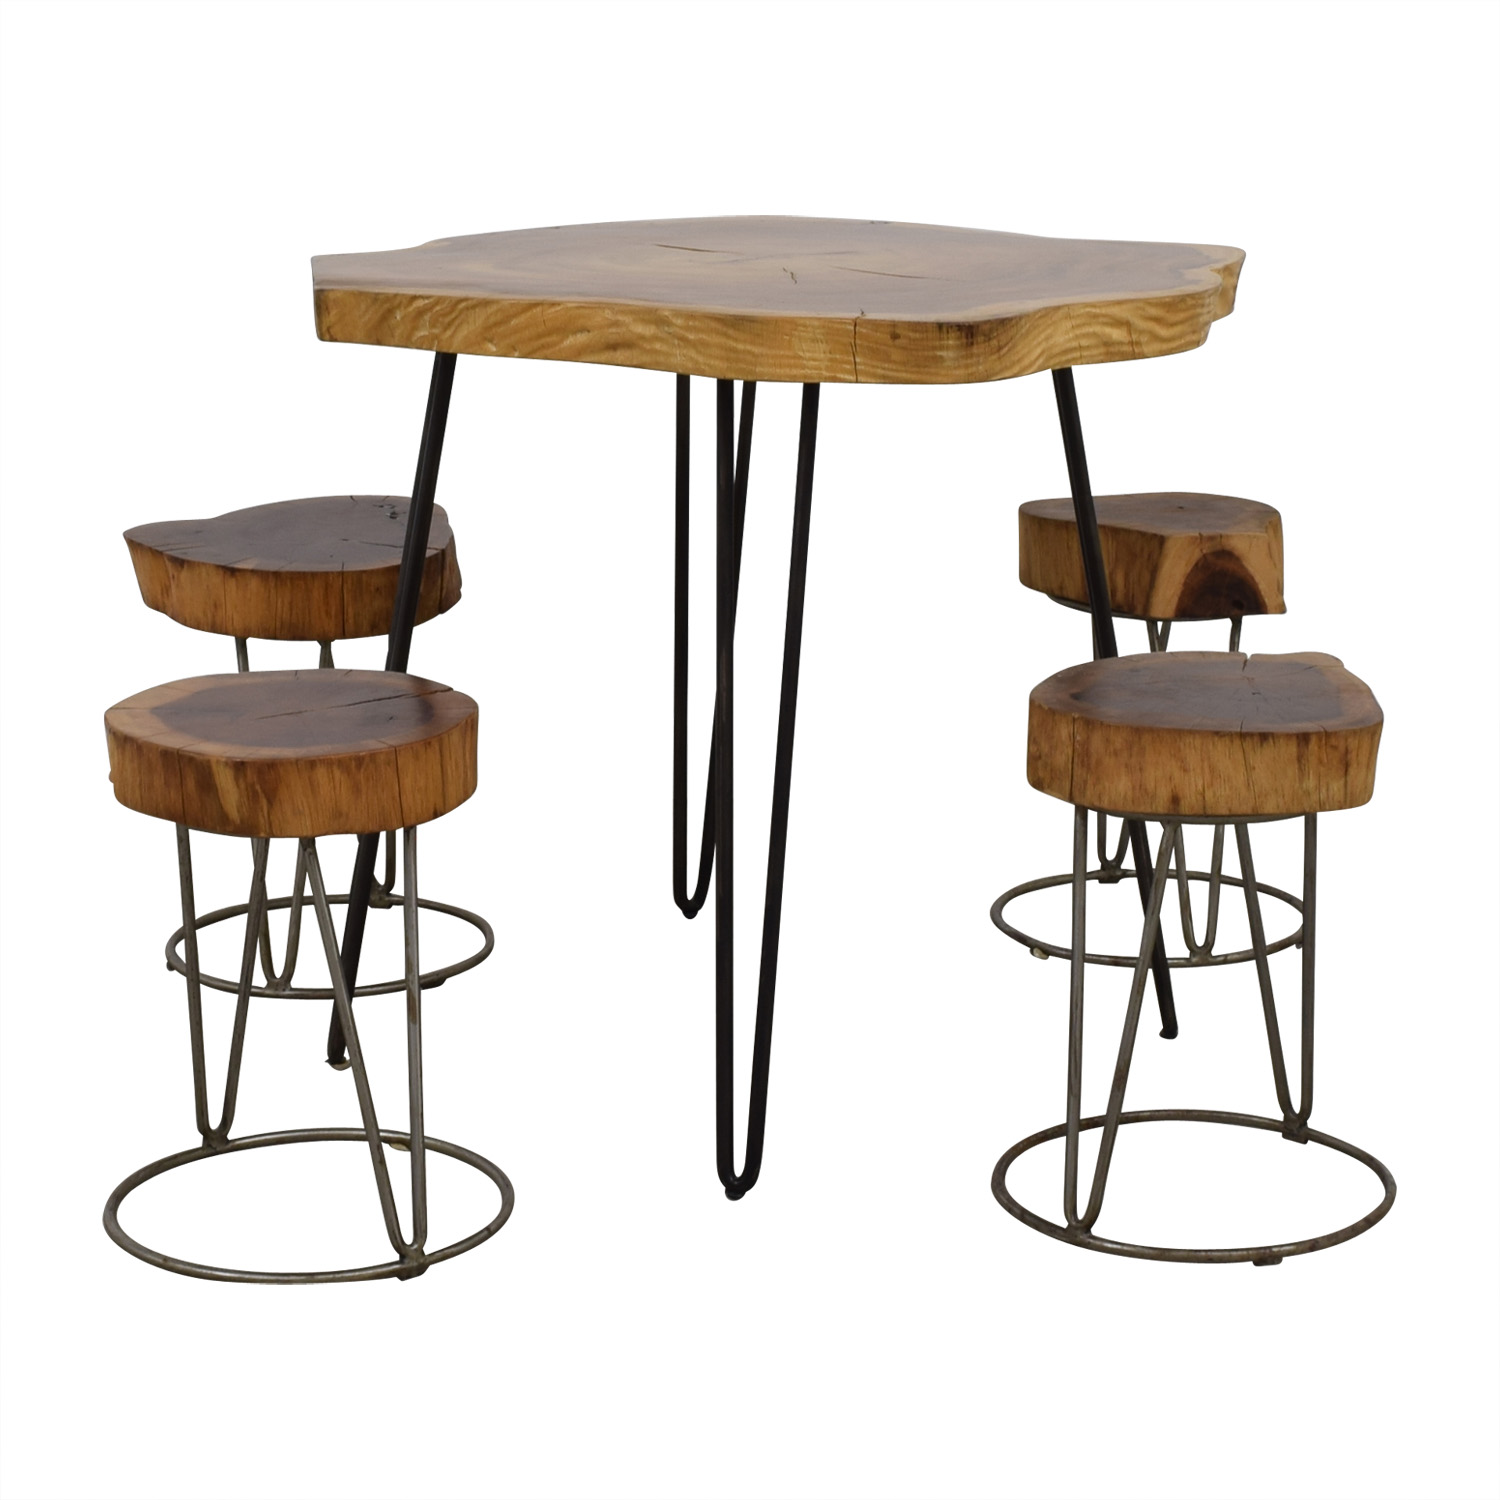 shop From the Source Custom Raw Rustic Wooden Table and Stools From the Source